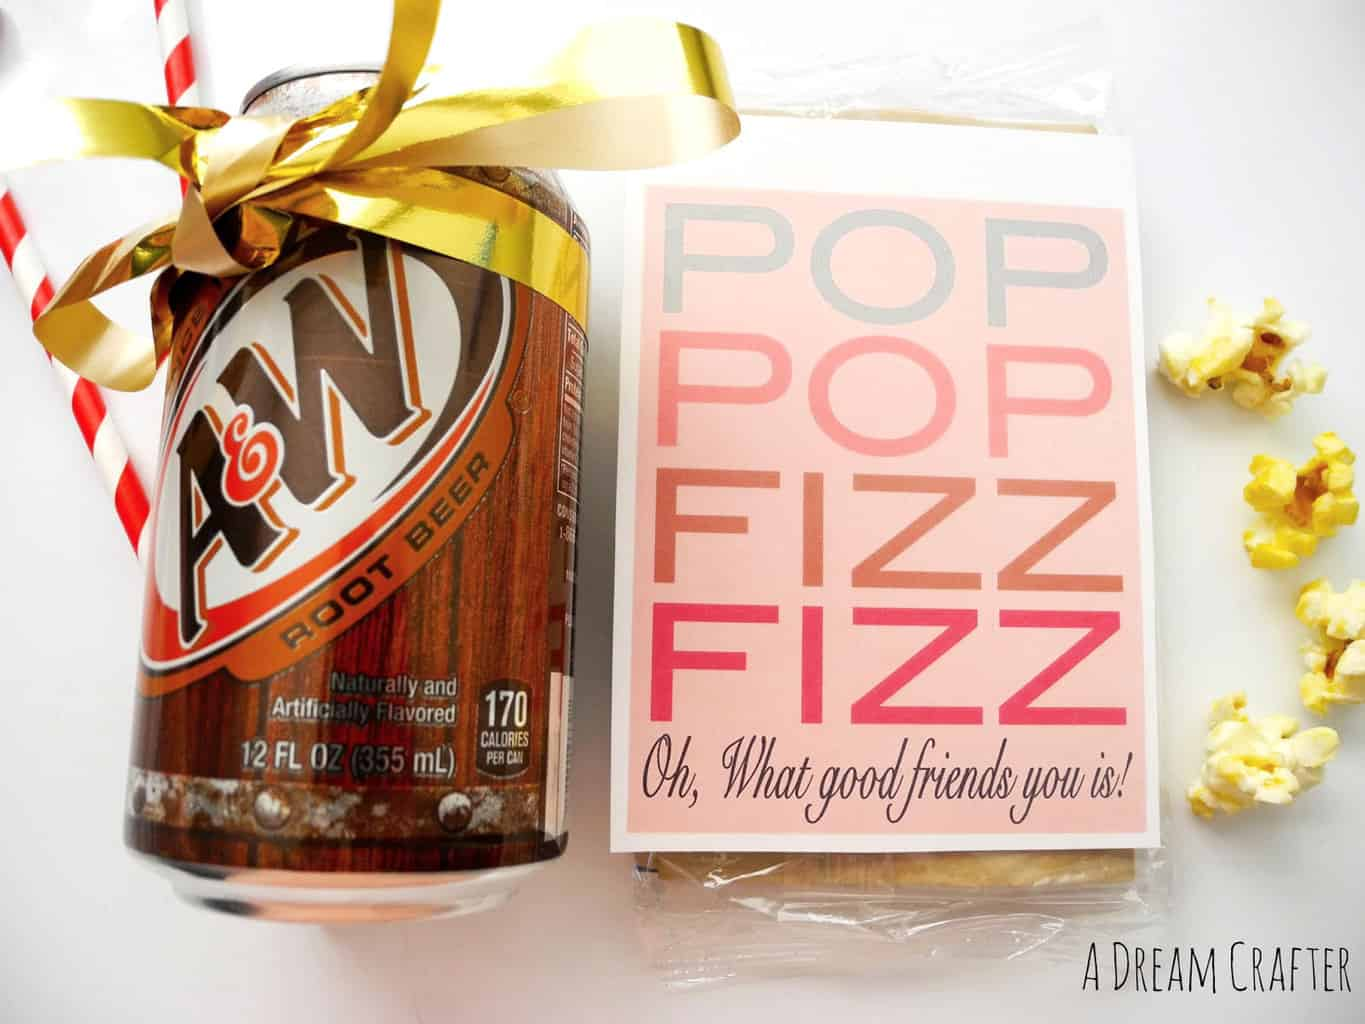 Pop Pop Fizz Fizz holiday gift tag on Popcorn and a Root Beer can